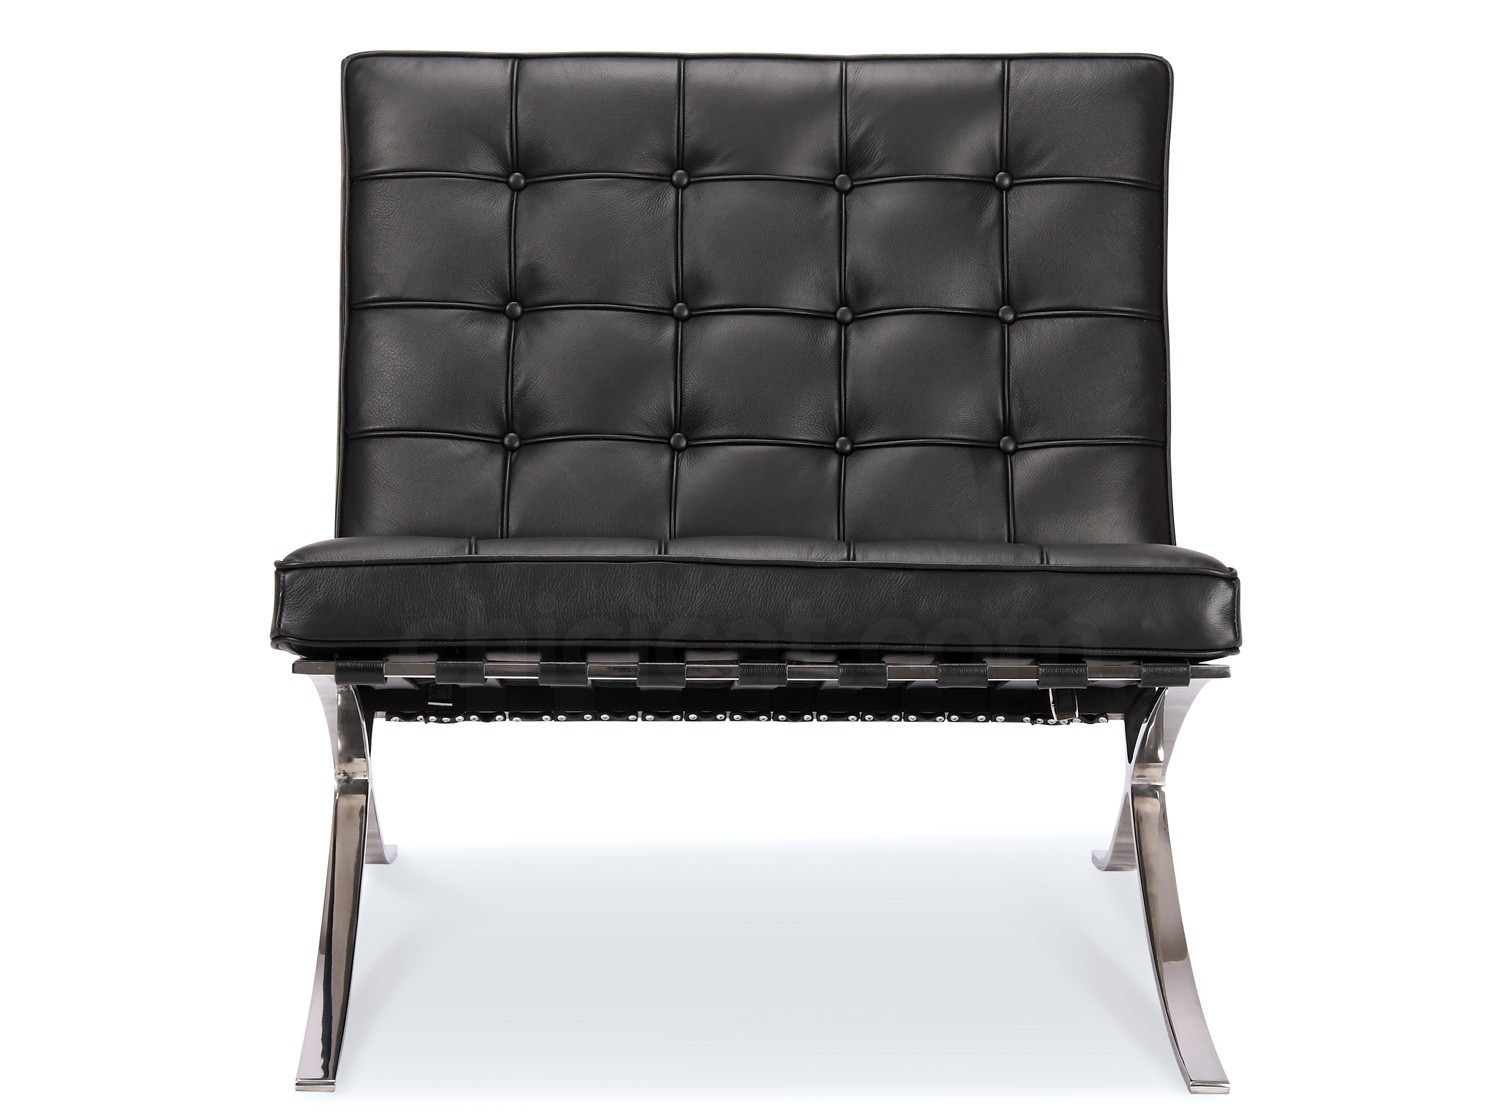 barcelona chair by mies van der rohe platinum replica. Black Bedroom Furniture Sets. Home Design Ideas